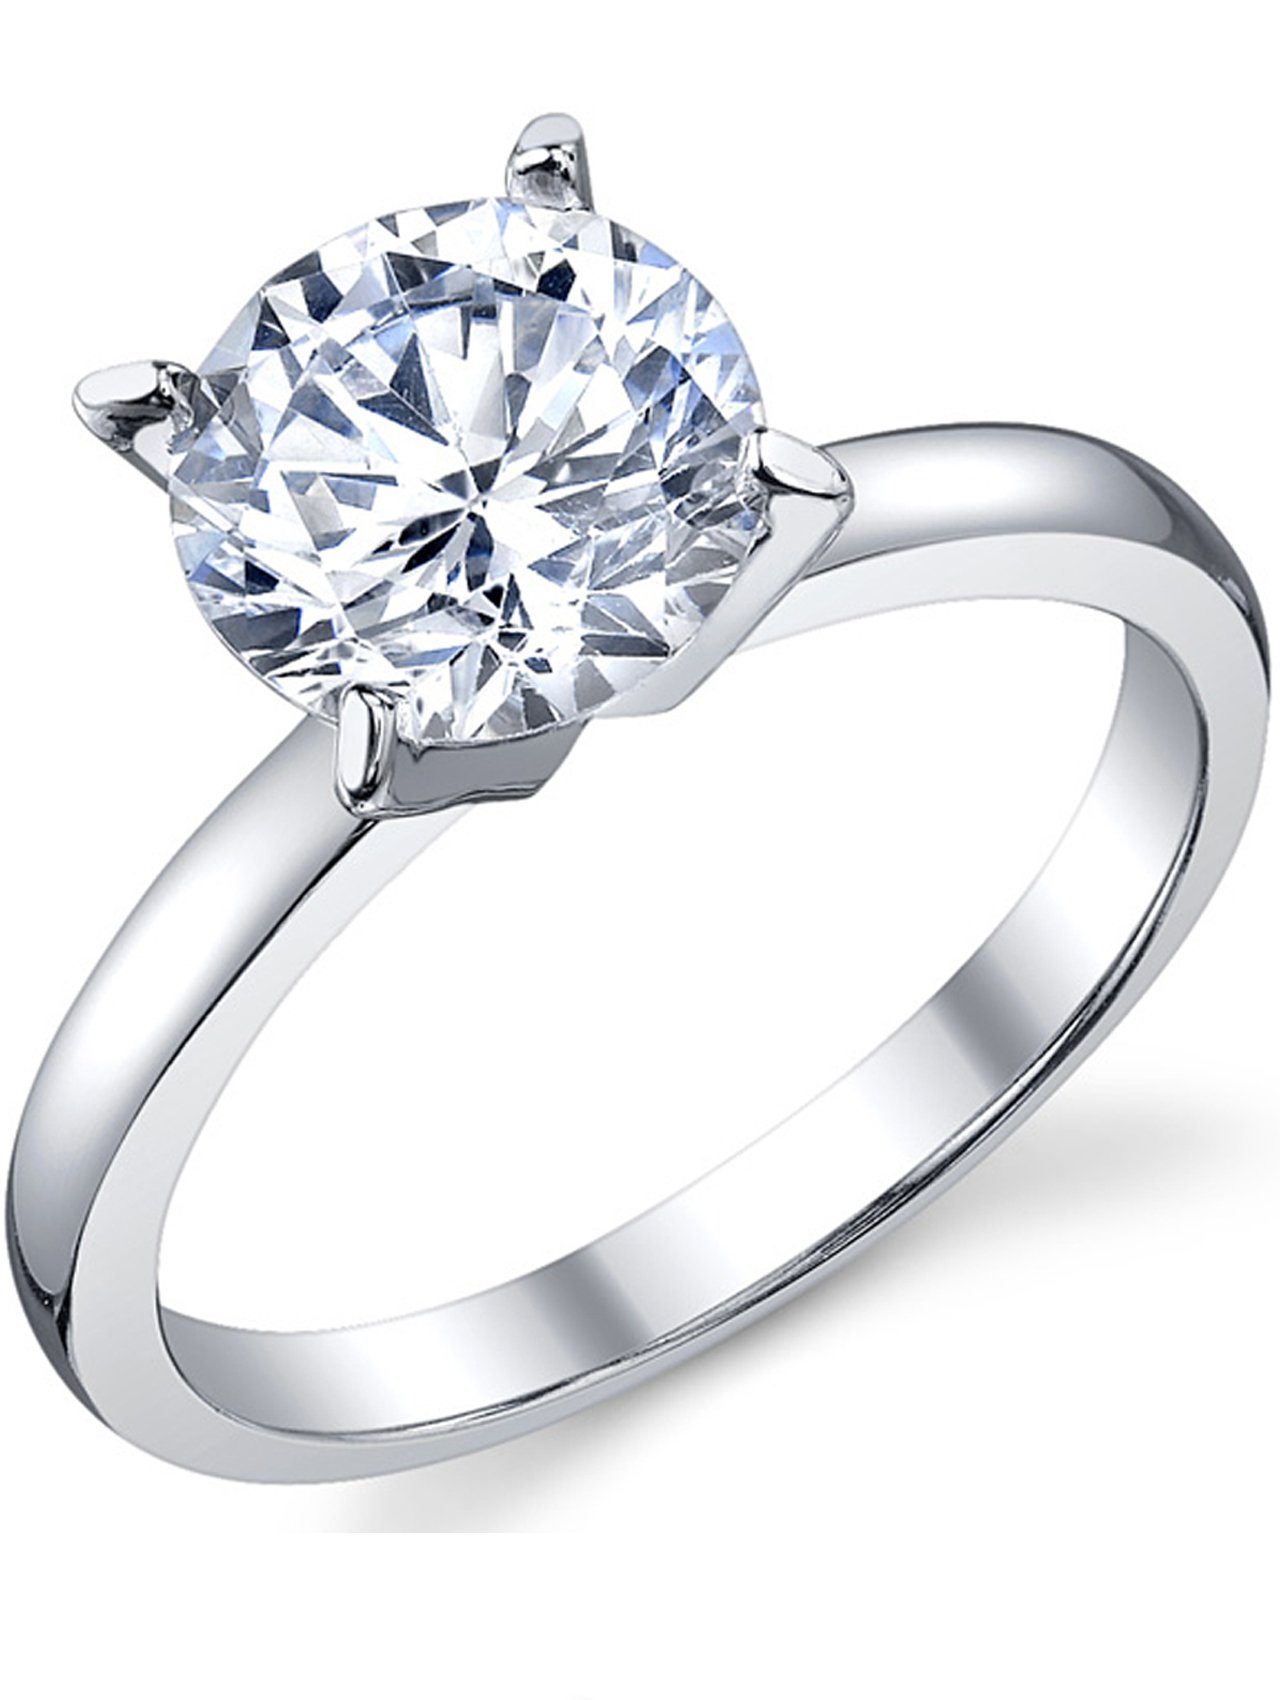 2 Carat Round Brilliant Cubic Zirconia CZ Sterling Silver 925 Wedding Engagement Ring Size 6 by Metal Masters Co.